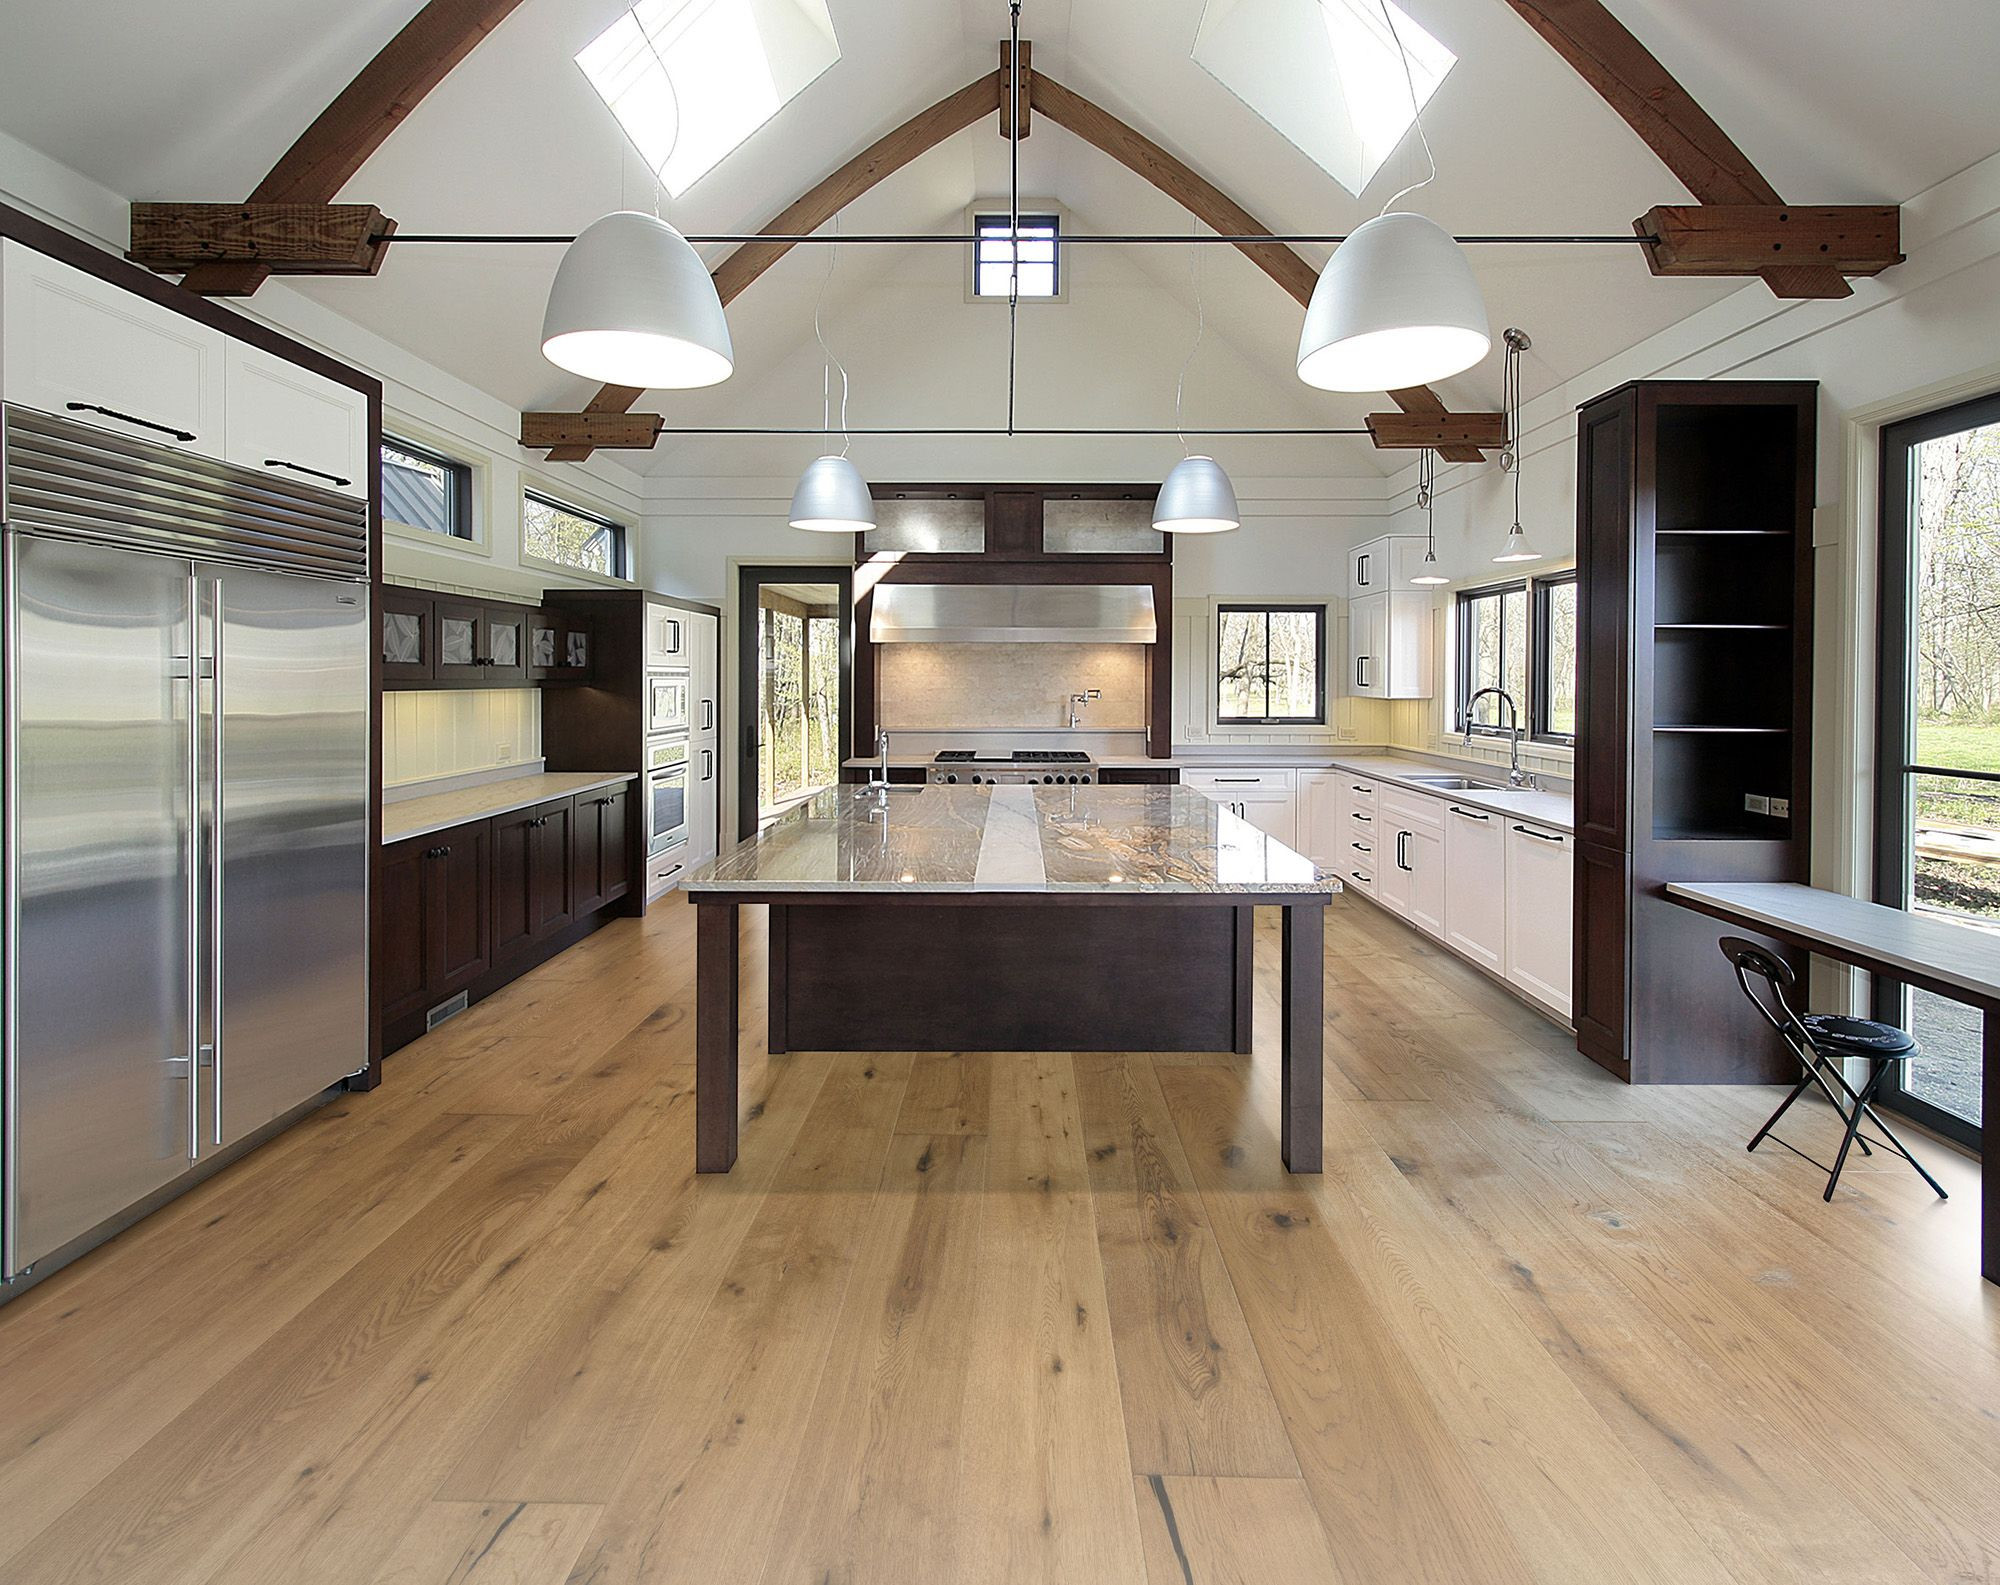 Hardwood Flooring Greenville Sc Of Builddirecta Heritage Collection Engineered Hardwood European In Builddirecta Heritage Collection Engineered Hardwood European White Oak Acoustic